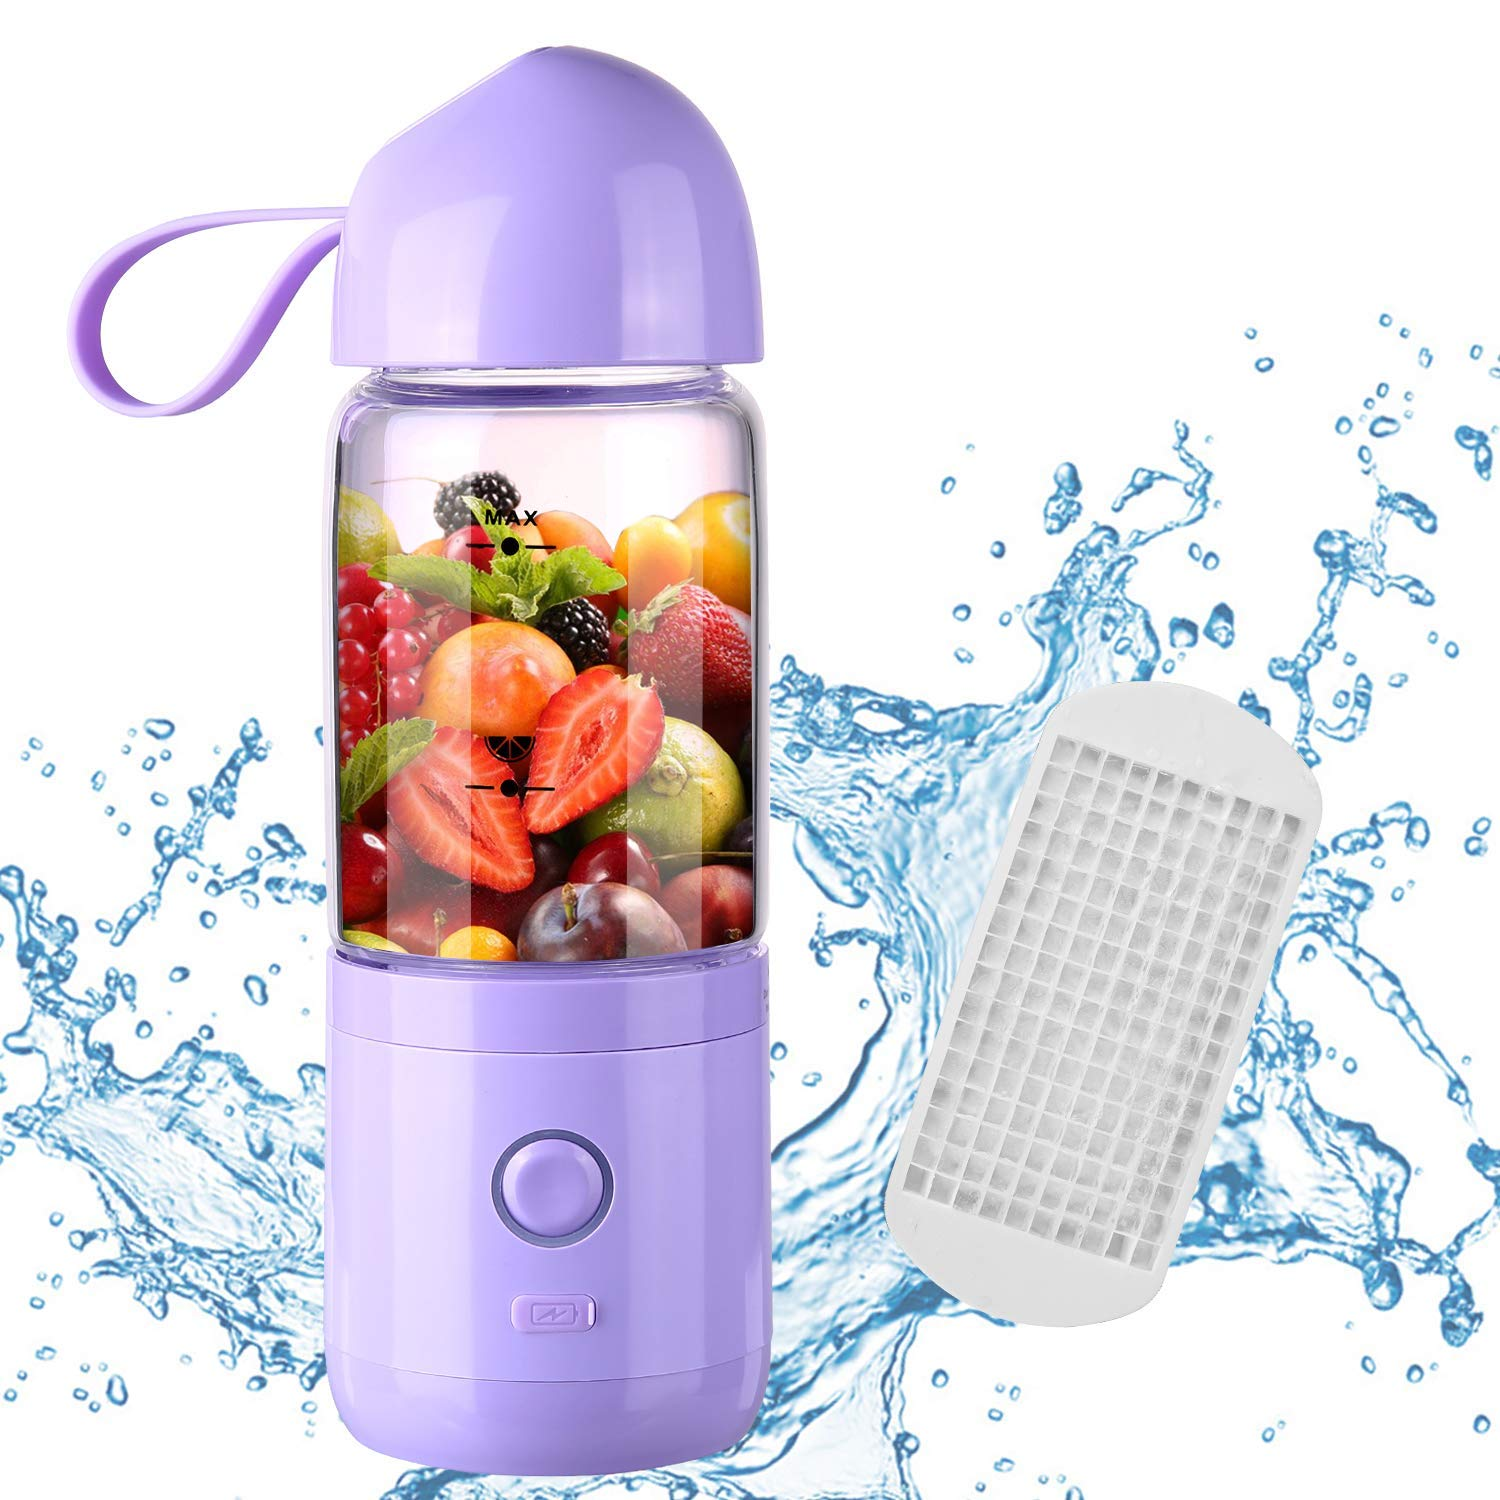 Portable Blender,Usb Rechargeable Portable Blender Juicer Cup, Single Serve Fruit Mixer, Multifunctional Small Travel Blender